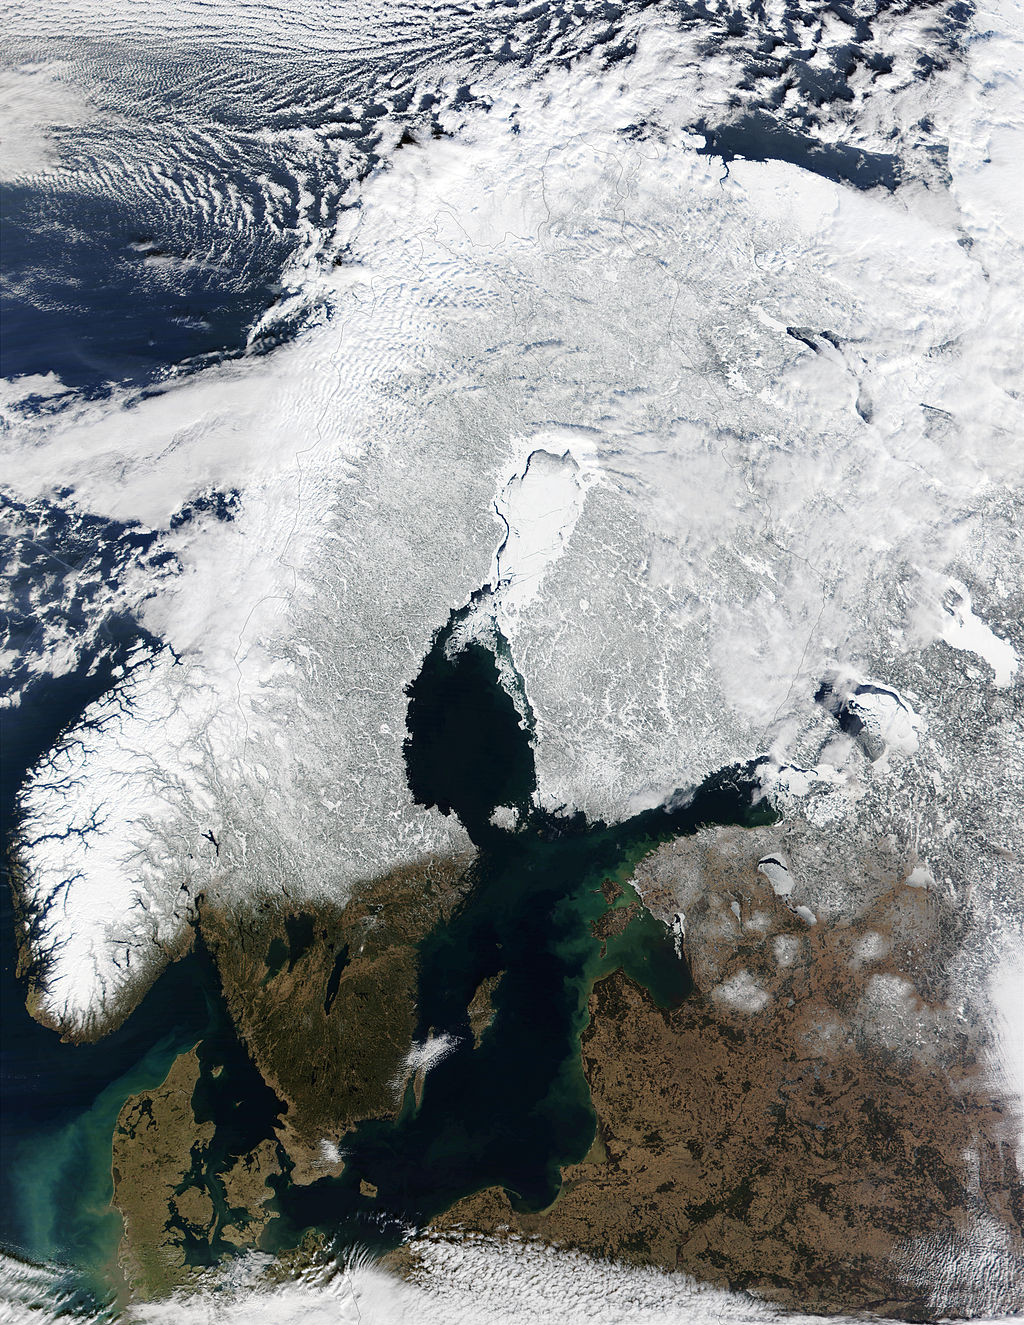 This satellite image (c.2002) is a good reference for a) the difference in topography between Norway and Sweden, and b) the numerous lakes and rivers, formed through glacial processes.